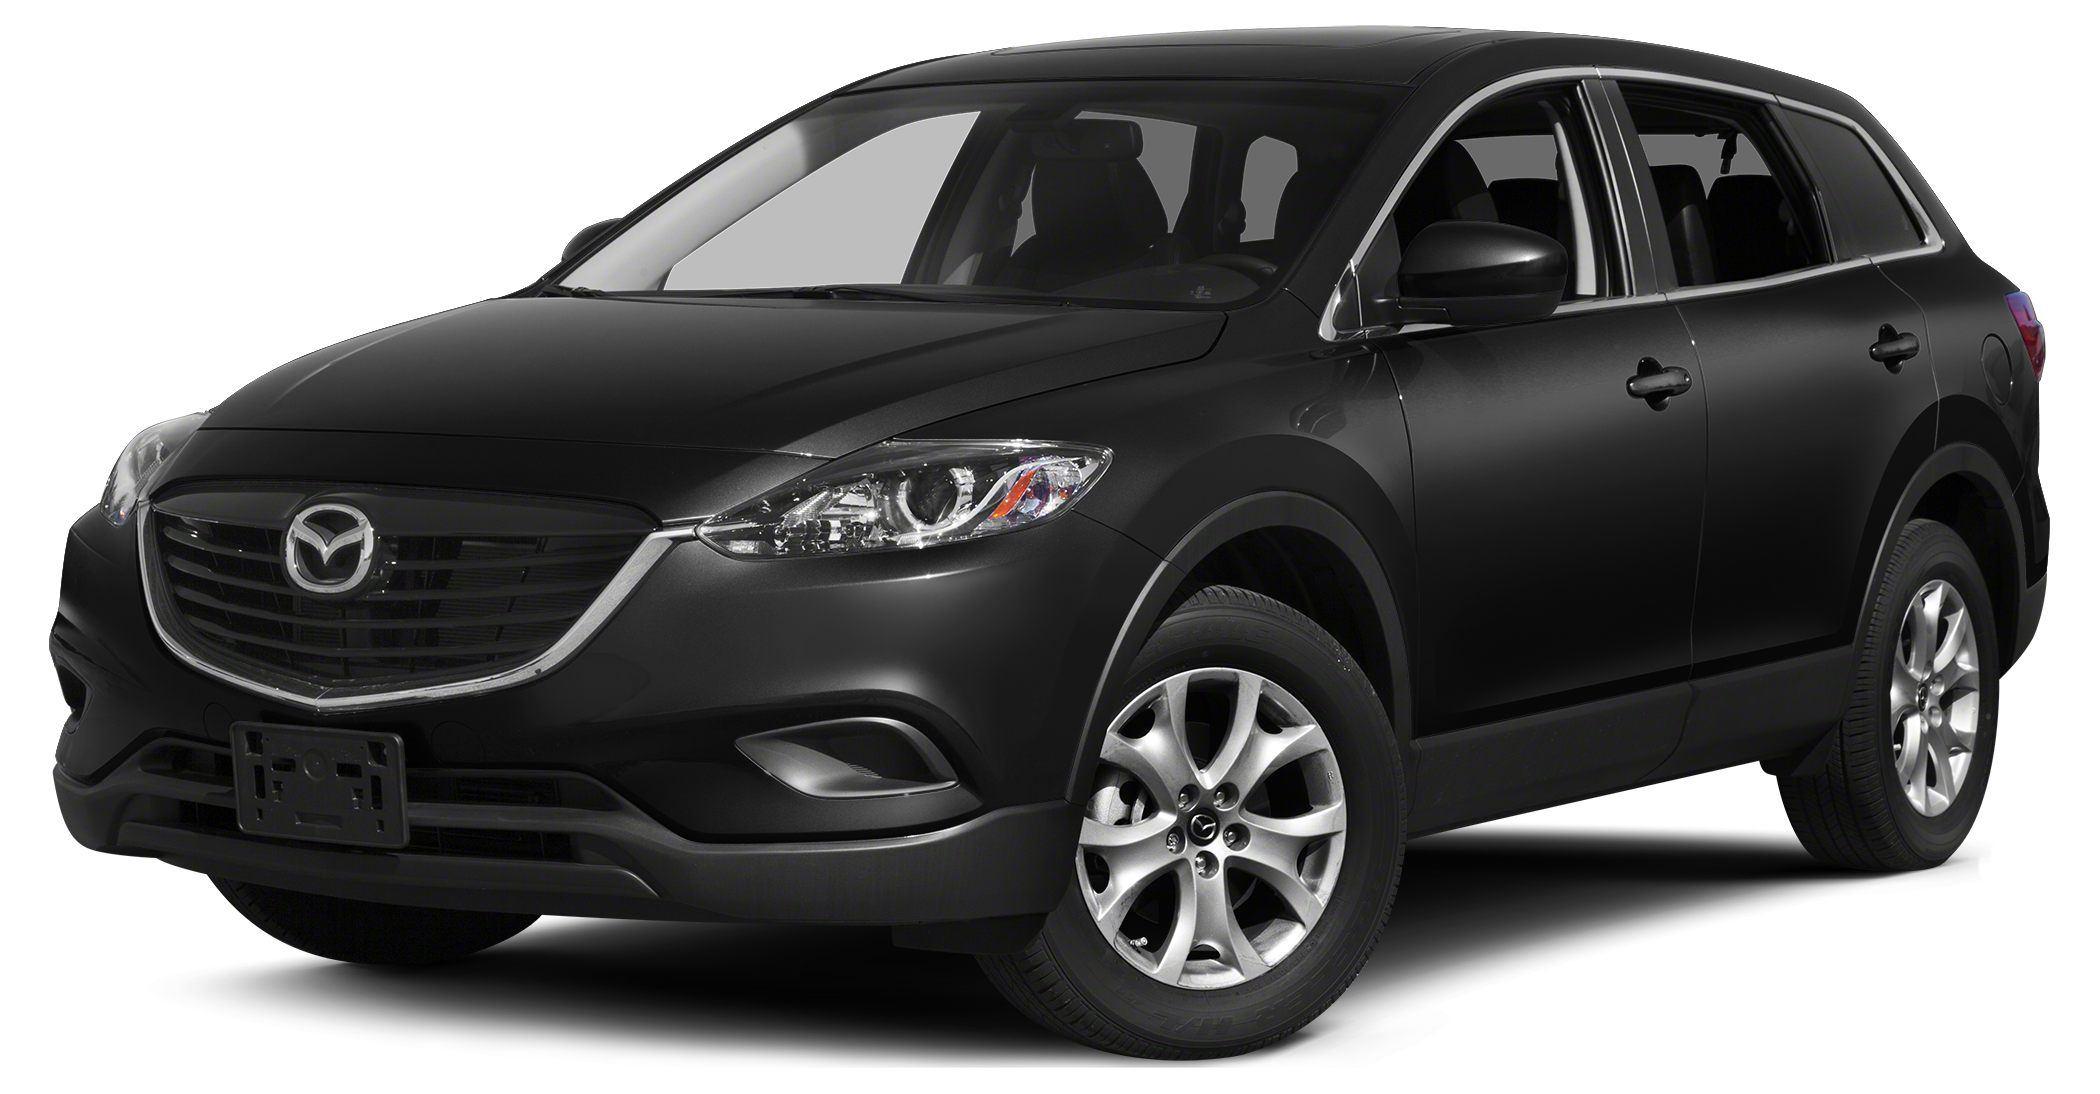 2014 Mazda CX-9 Grand Touring Miles 36712Color Jet Black Mica Stock DTH0131A VIN JM3TB2DA0E0